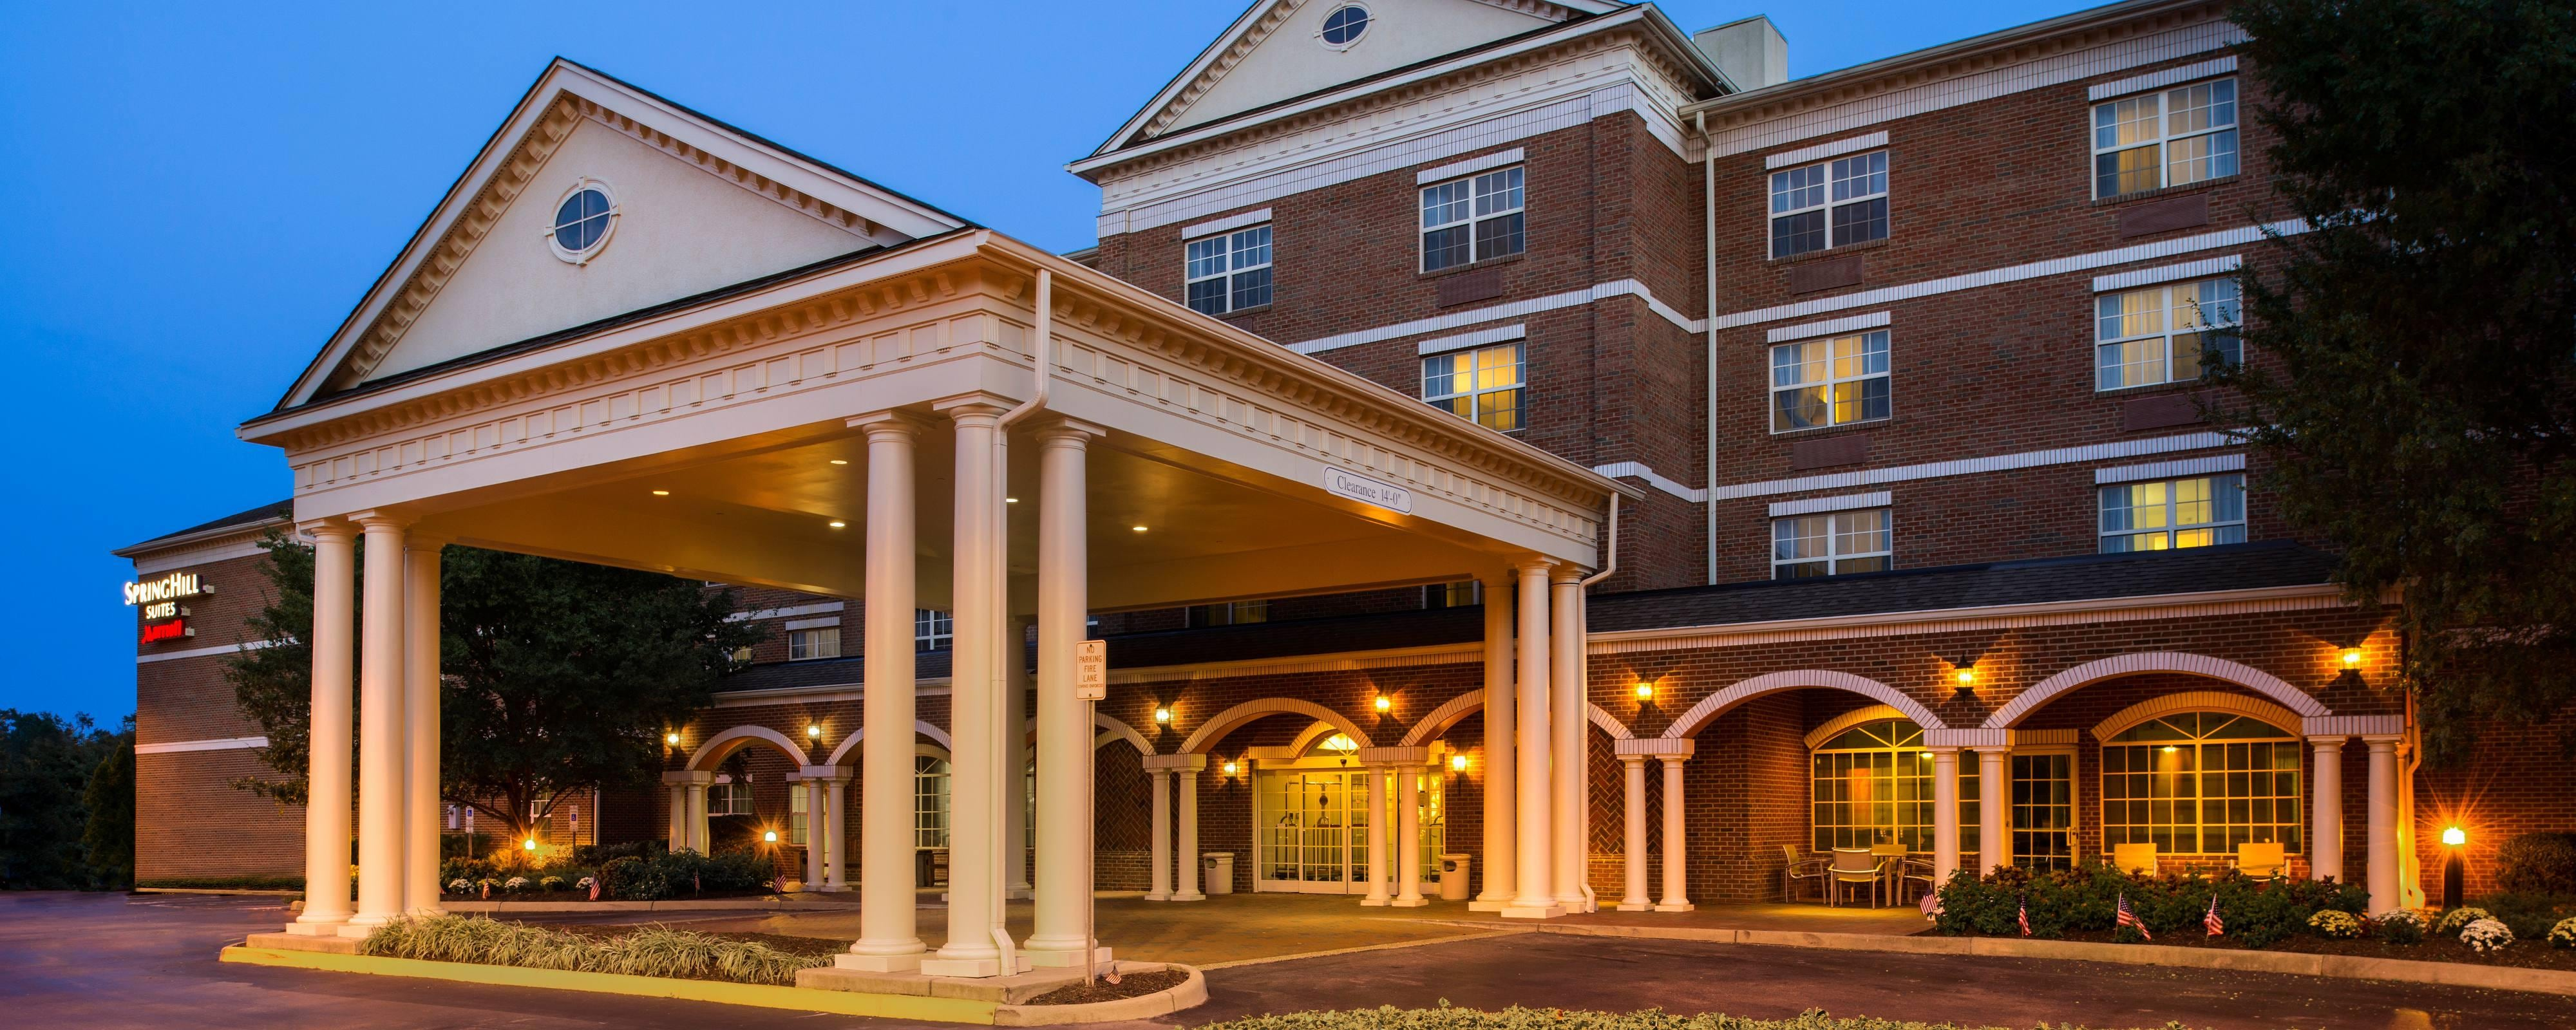 Hotels in Williamsburg, VA | SpringHill Suites Williamsburg